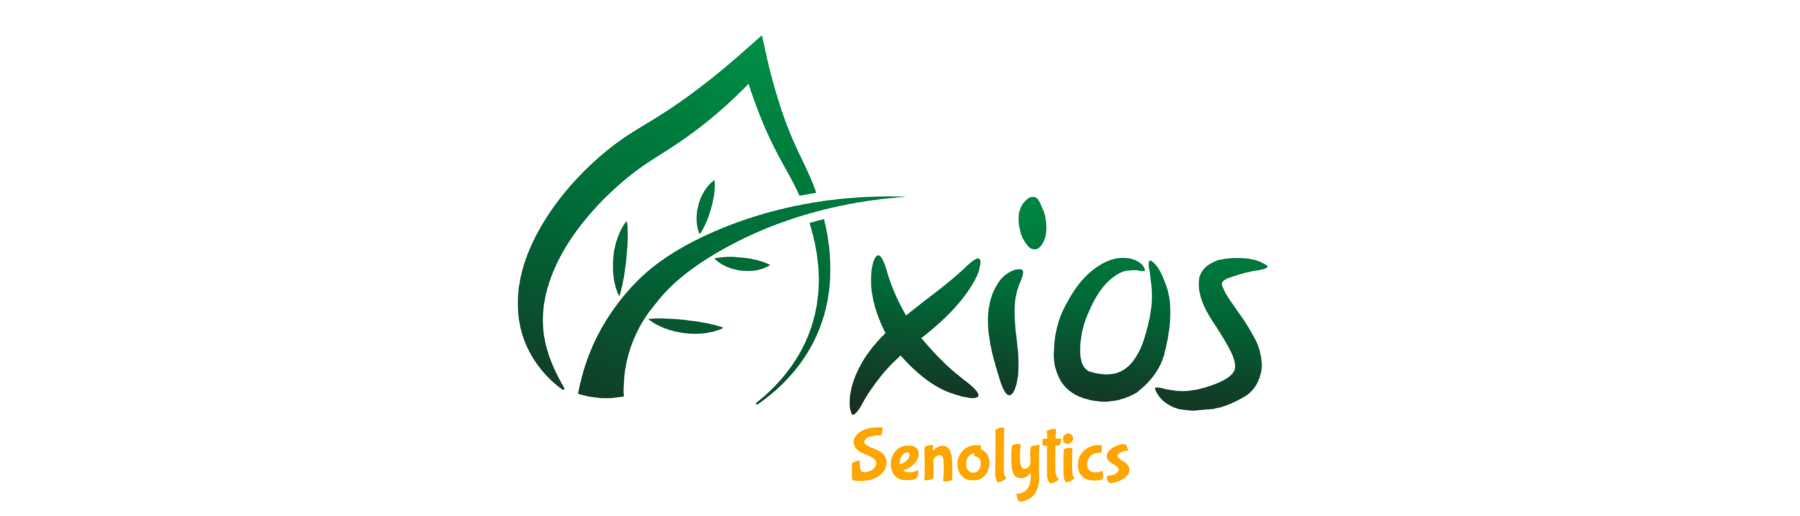 Axios Senolytics